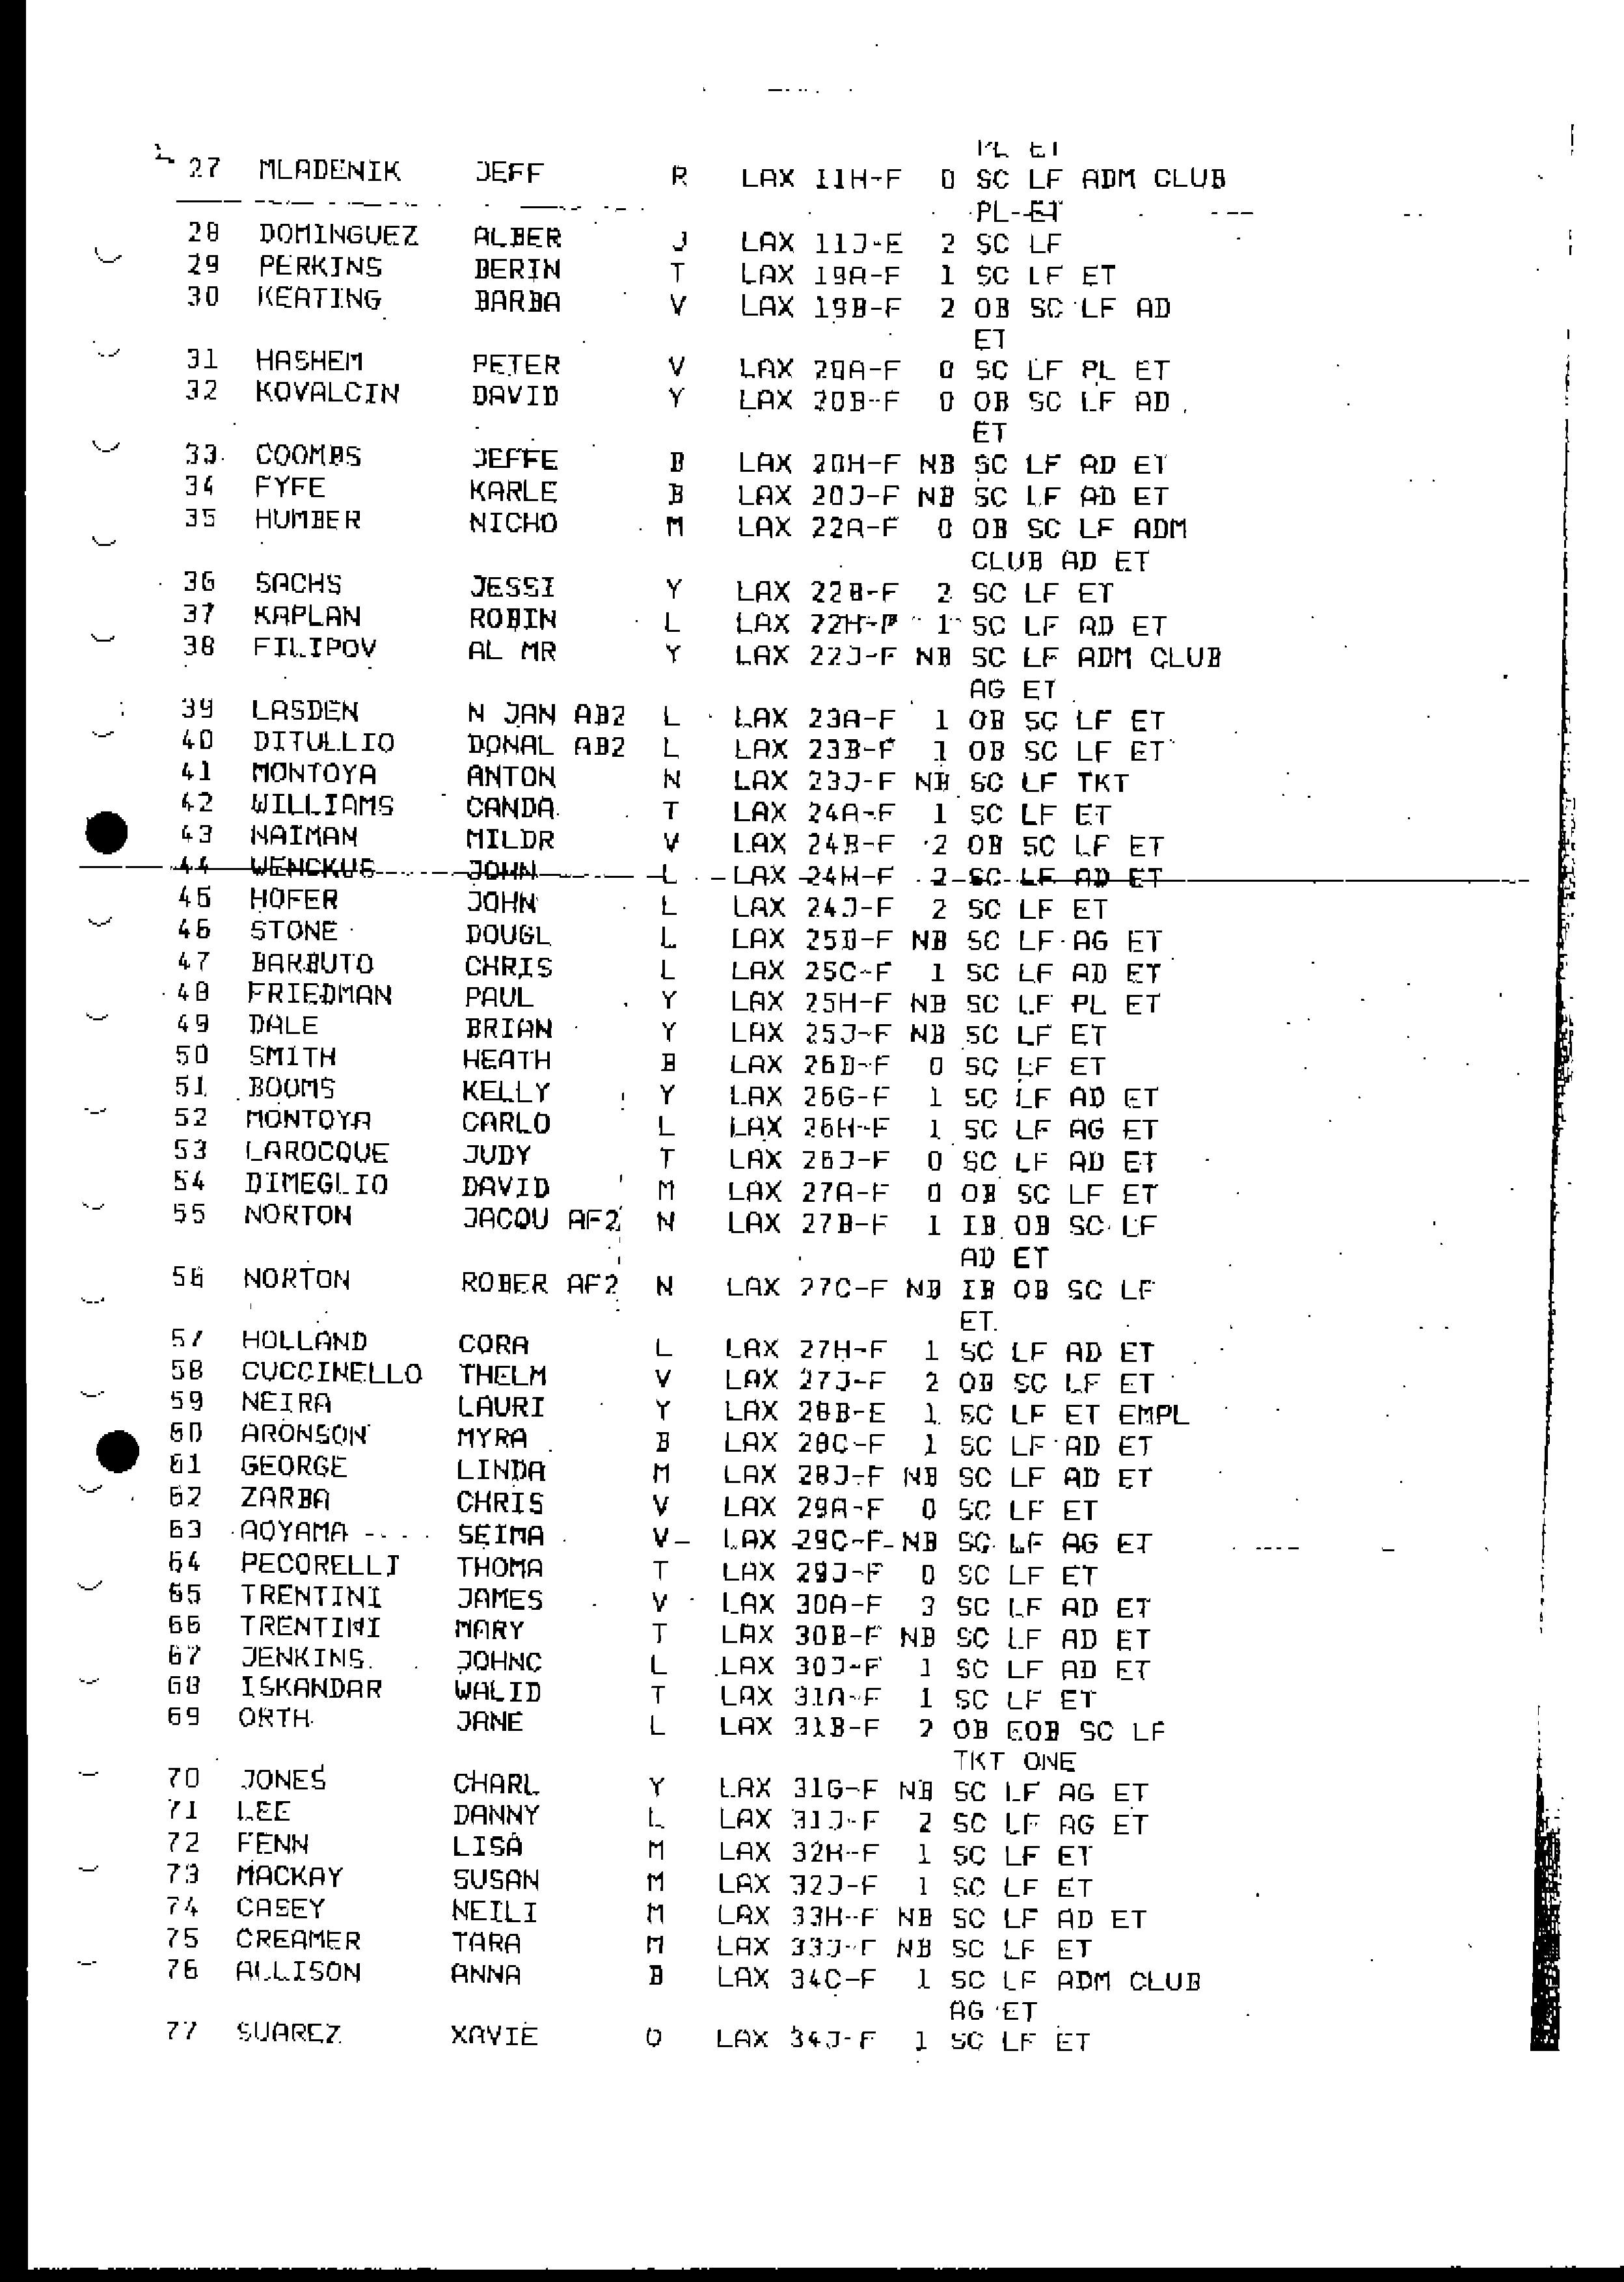 Image of Flight 11 Manifest b